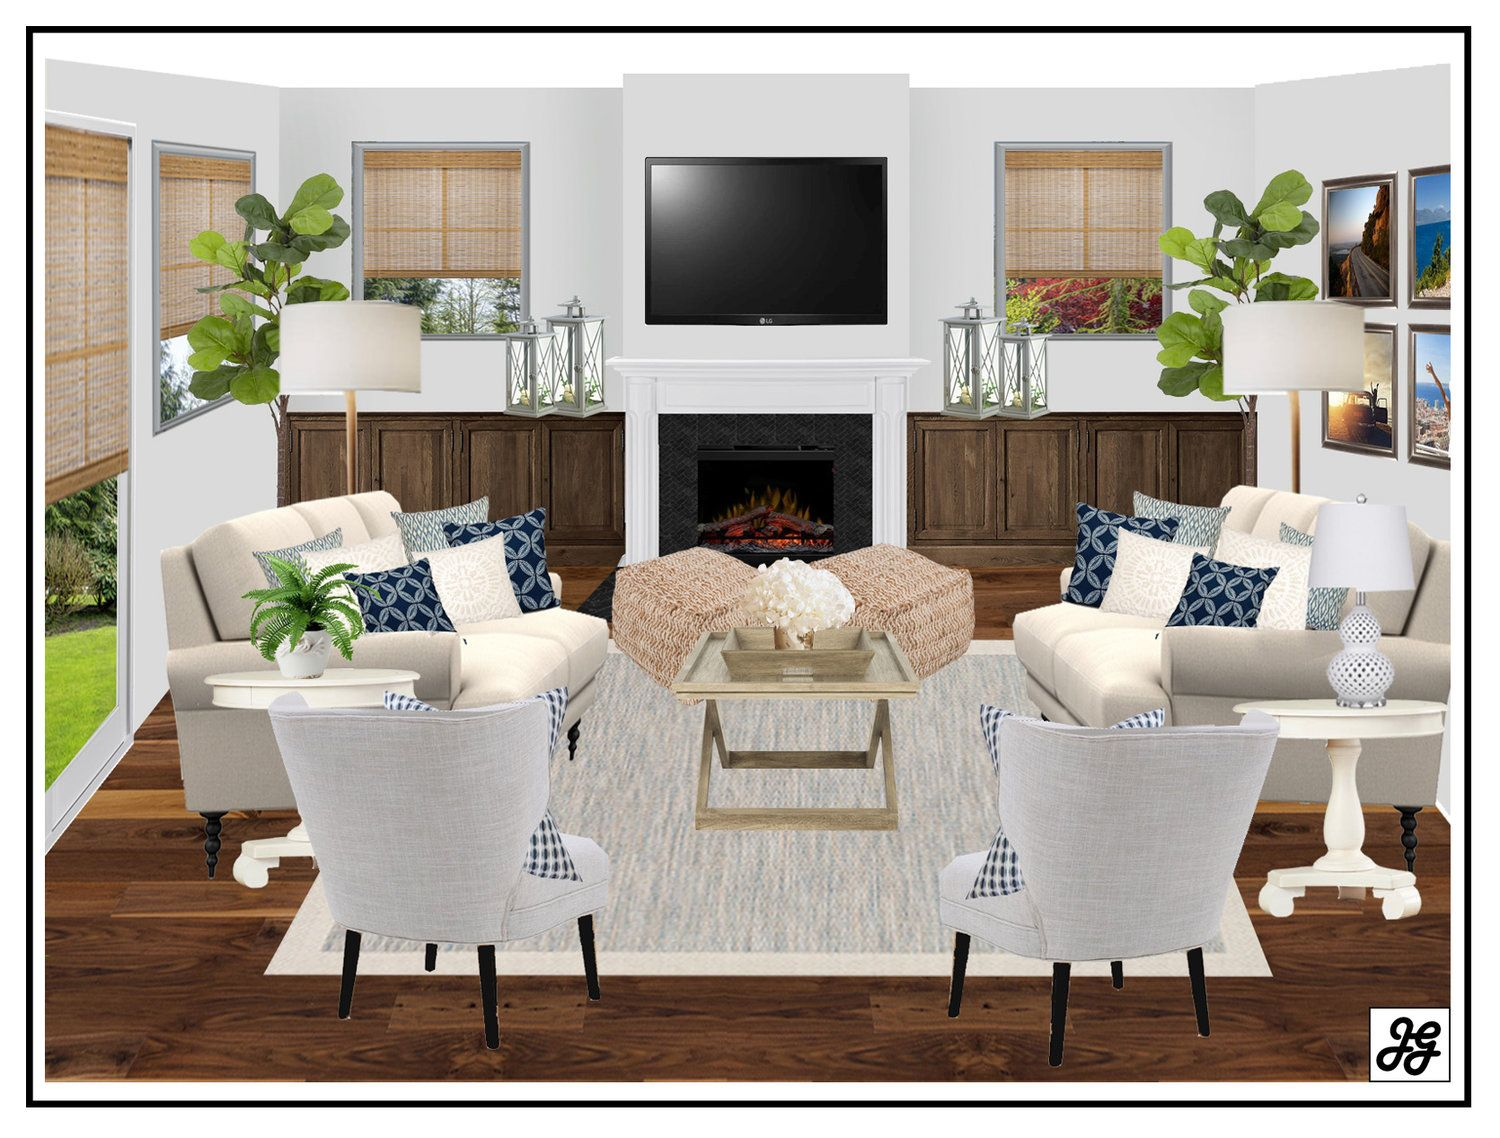 Living Room Design Concepts Classy Coastal Living Room Design Concept Modern Farmhouse Living Room Decorating Design